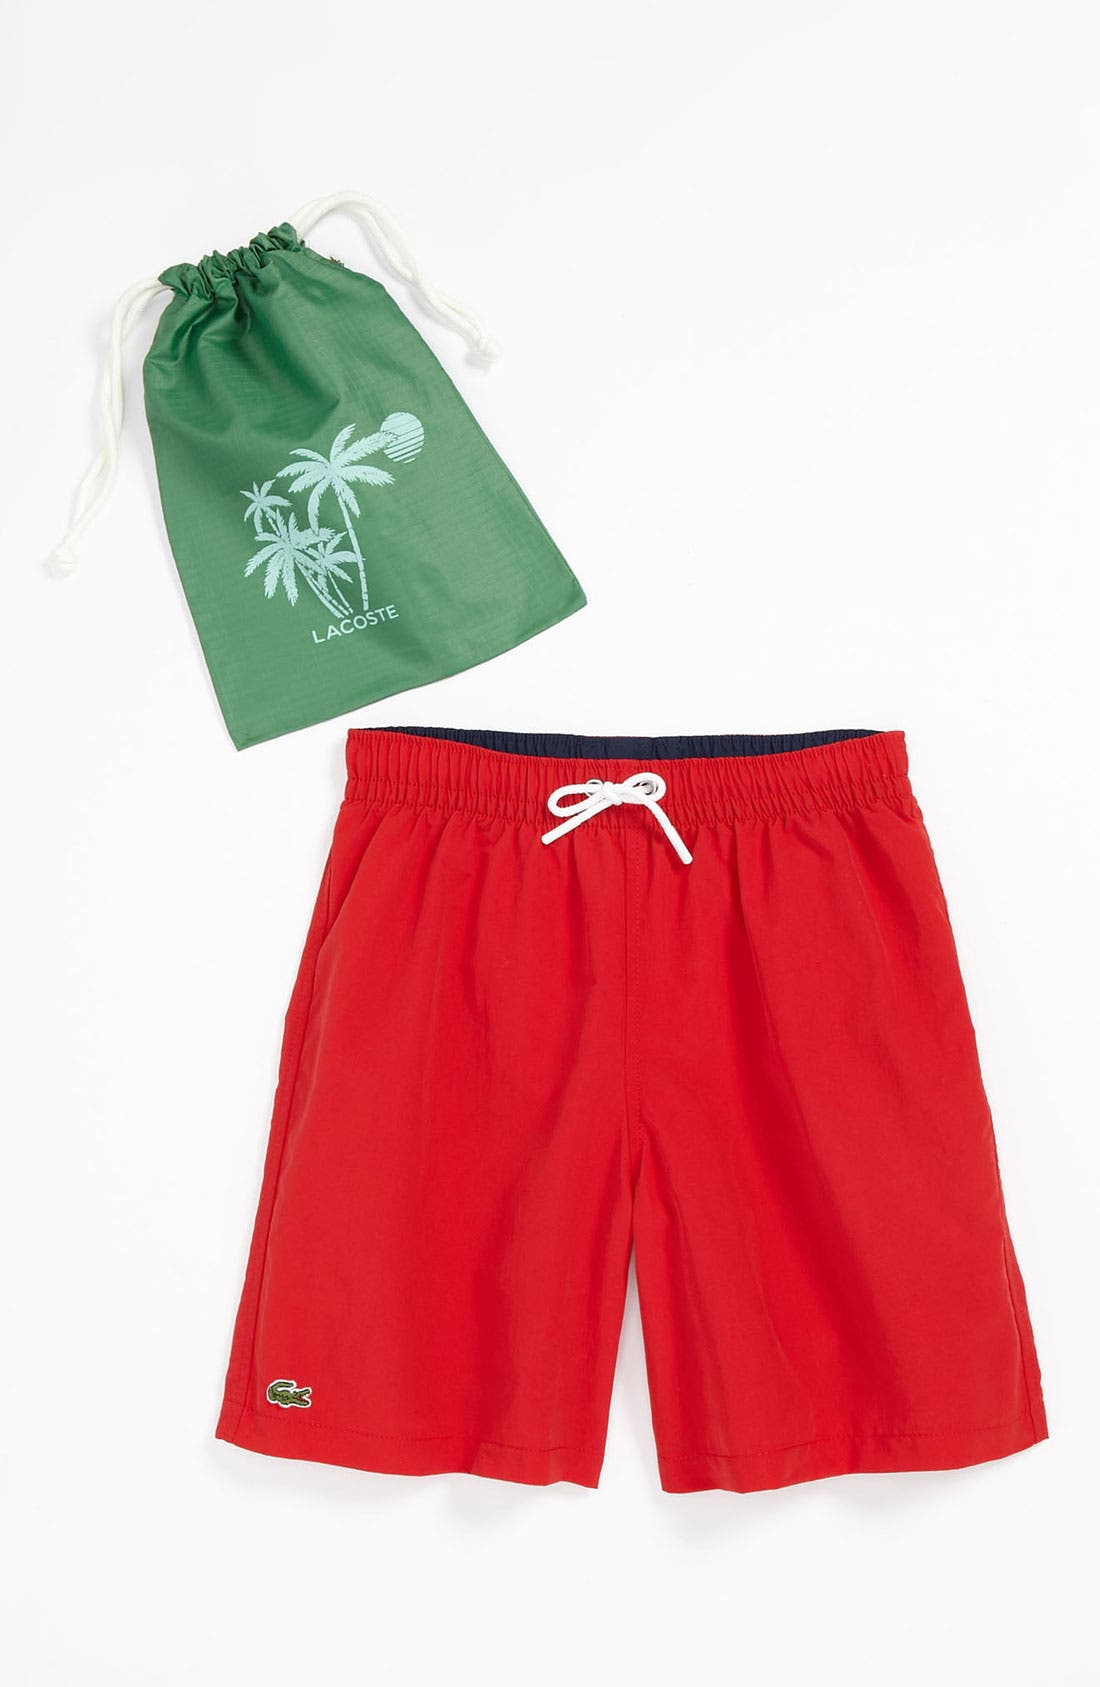 Alternate Image 1 Selected - Lacoste 'Hidden Logo' Swim Trunks (Big Boys)